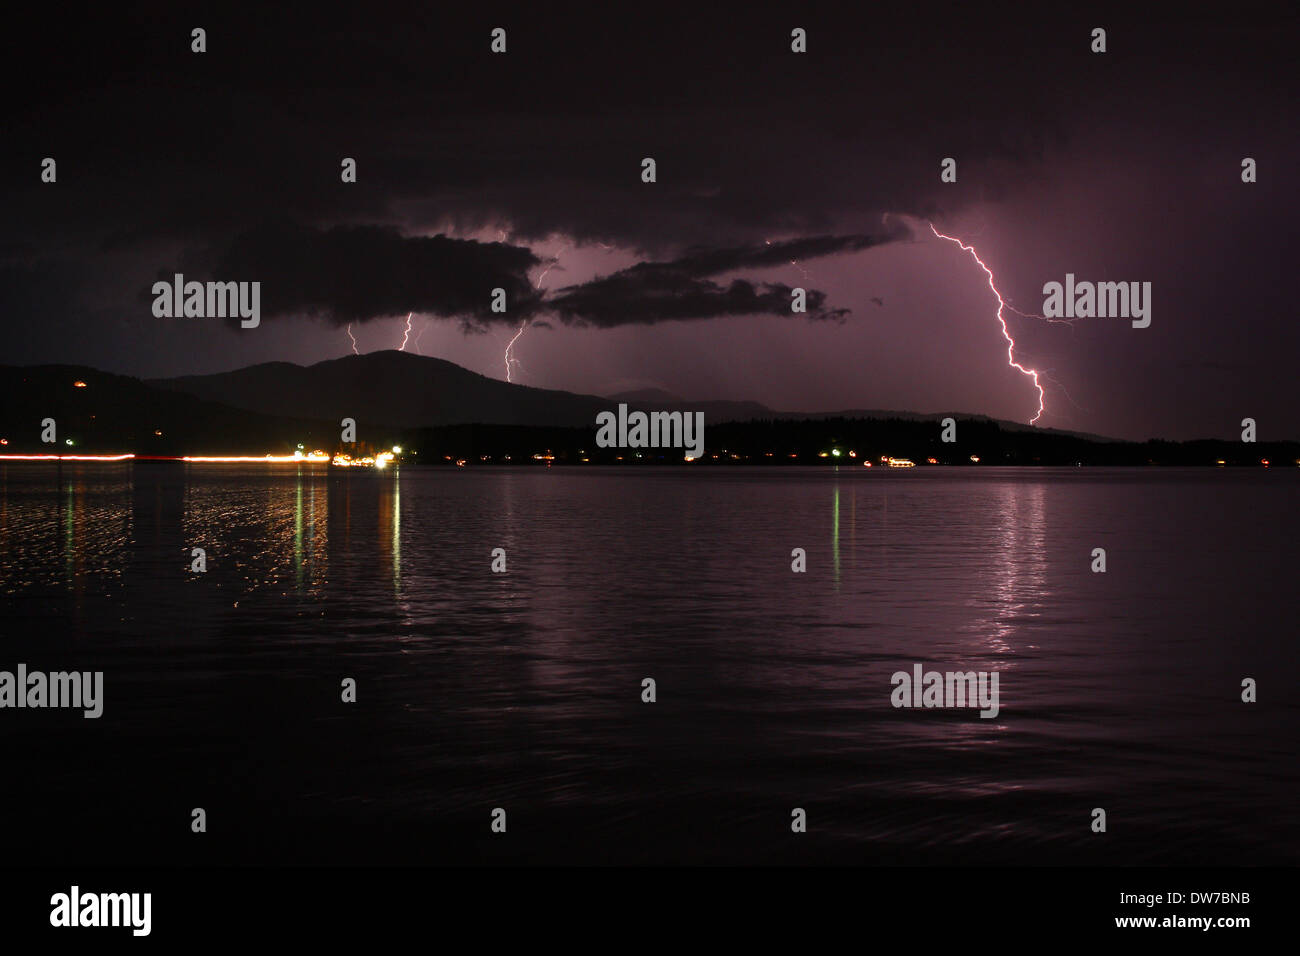 Thunder U0026 Lighting Storm In The Cloudy, Purple Night Sky, Reflecting Onto  The Lake Water In Sandpoint Idaho